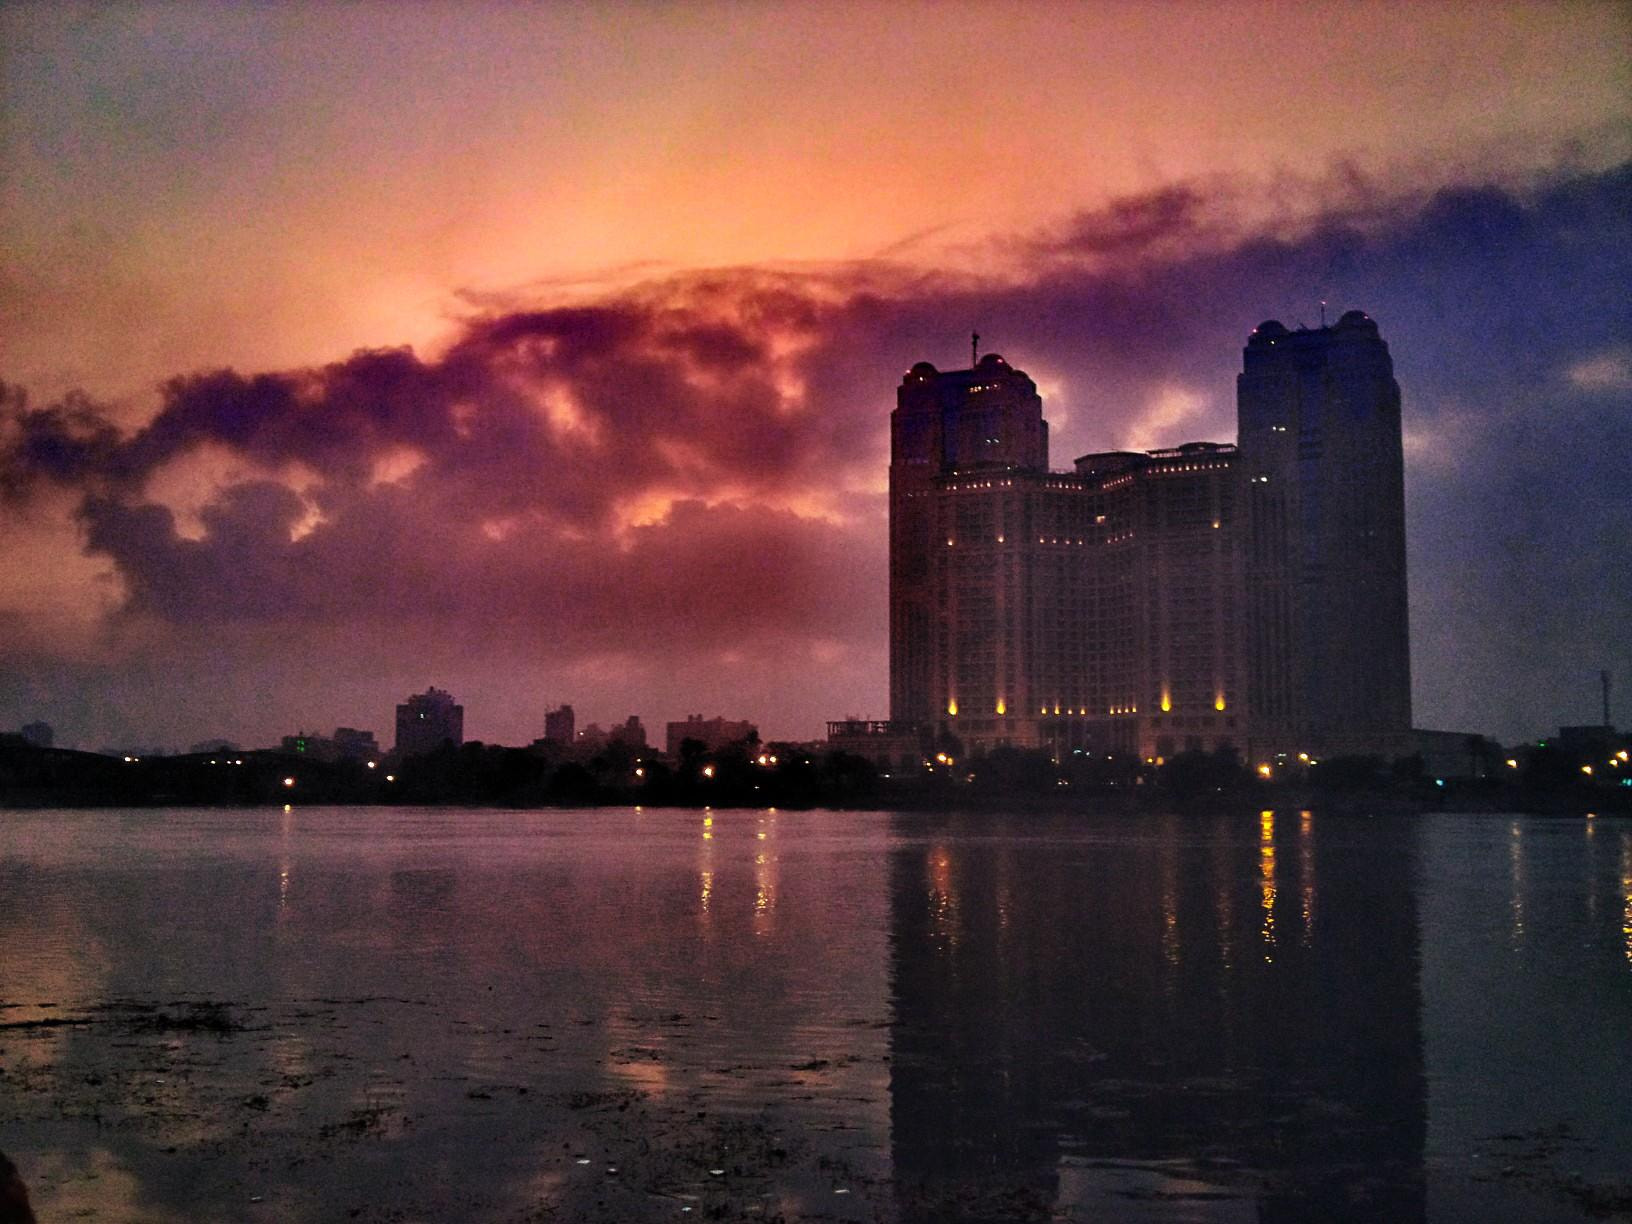 Photograph River Nile 3 HDR by Ahmed Hussain on 500px